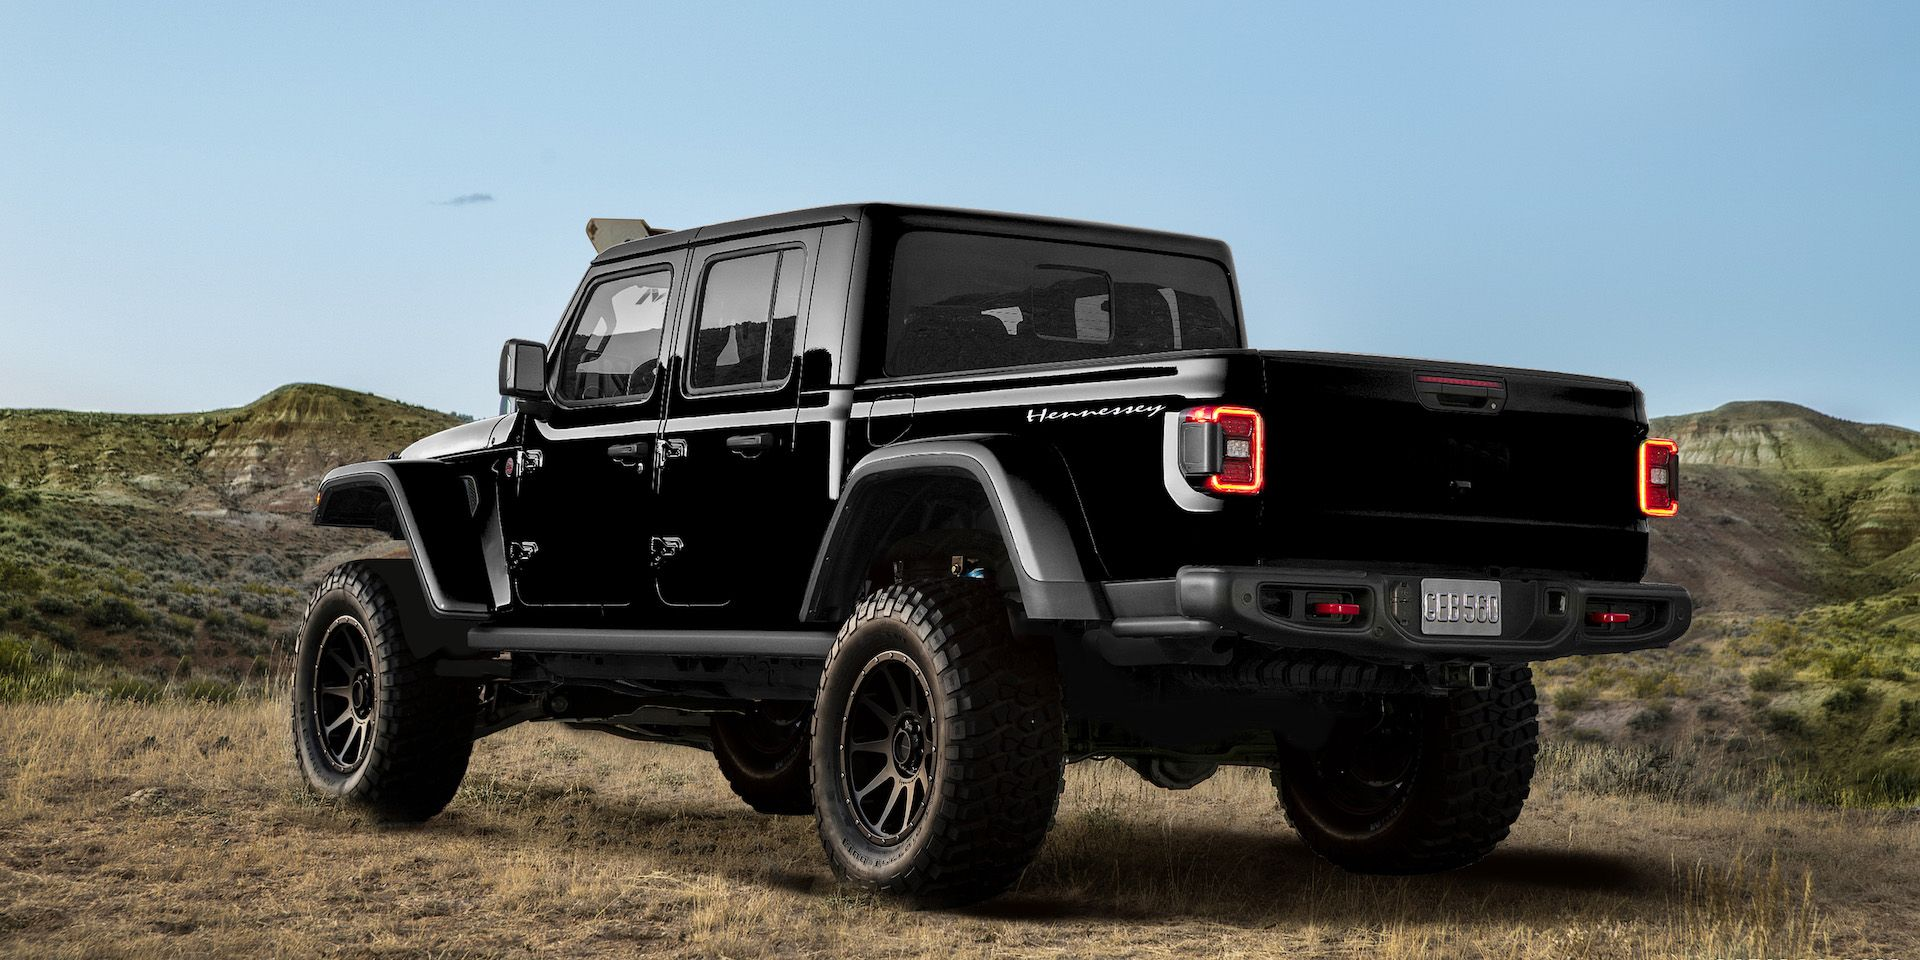 Pin By Carid On Custom Jeeps Jeep Gladiator Jeep Gladiator